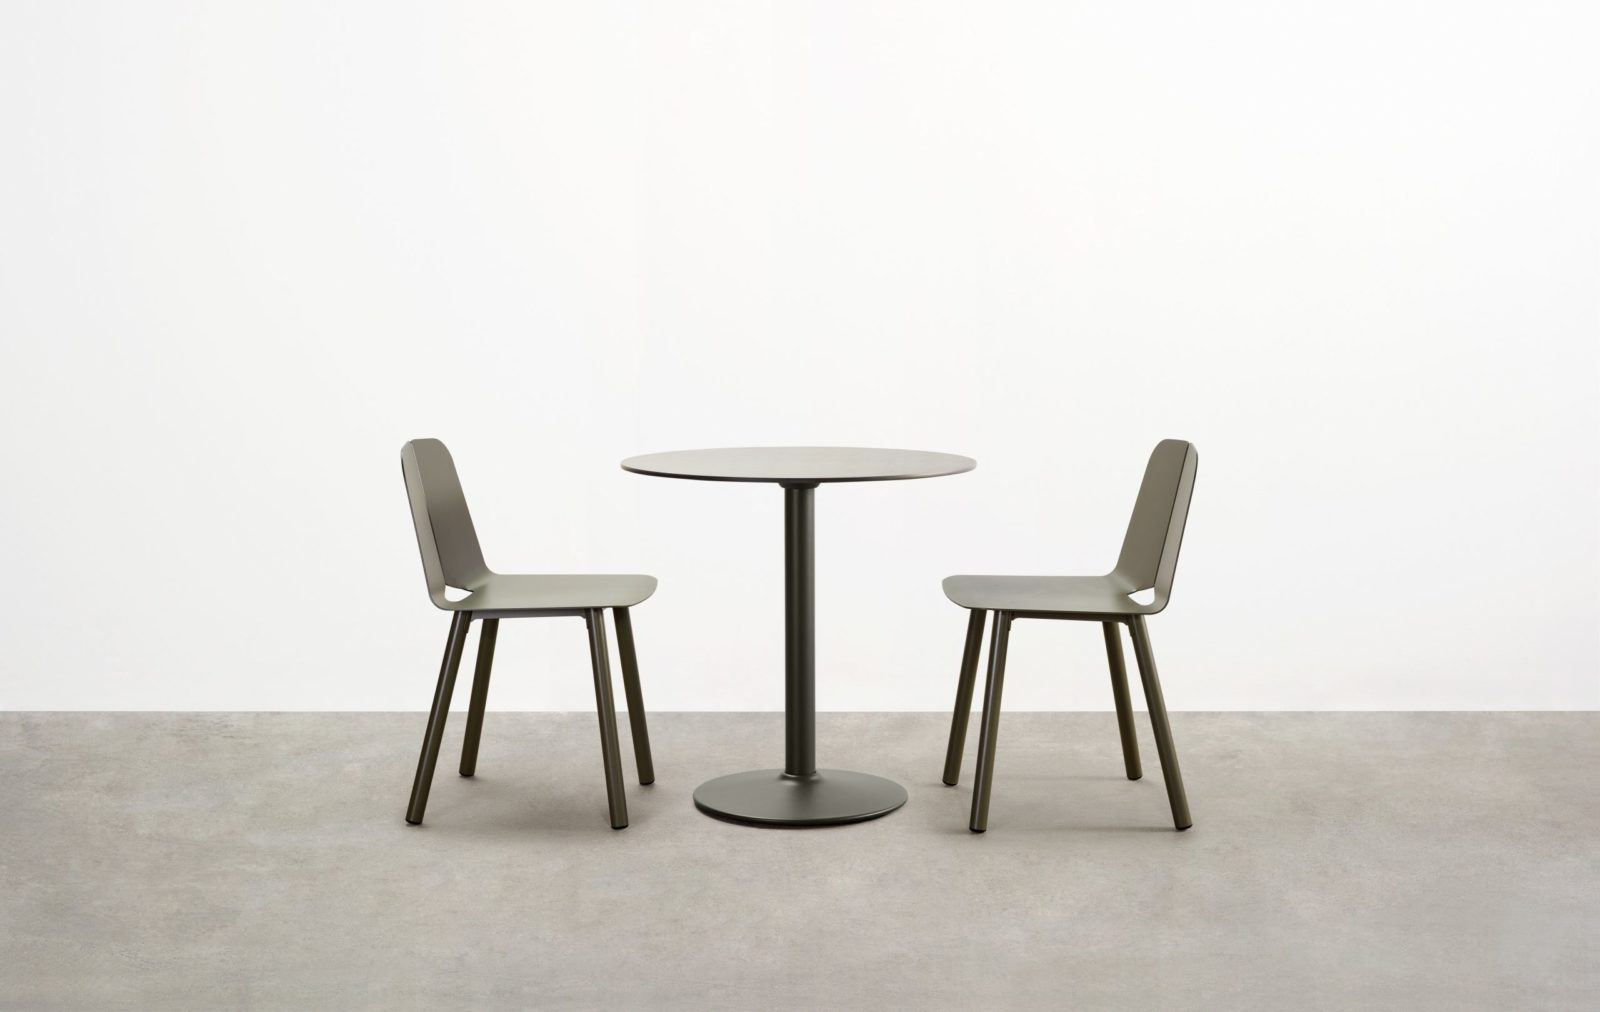 The Seam Café Table is a masterfully contemporary outdoor café table. Robust construction and materiality belie its sleek silhouette.